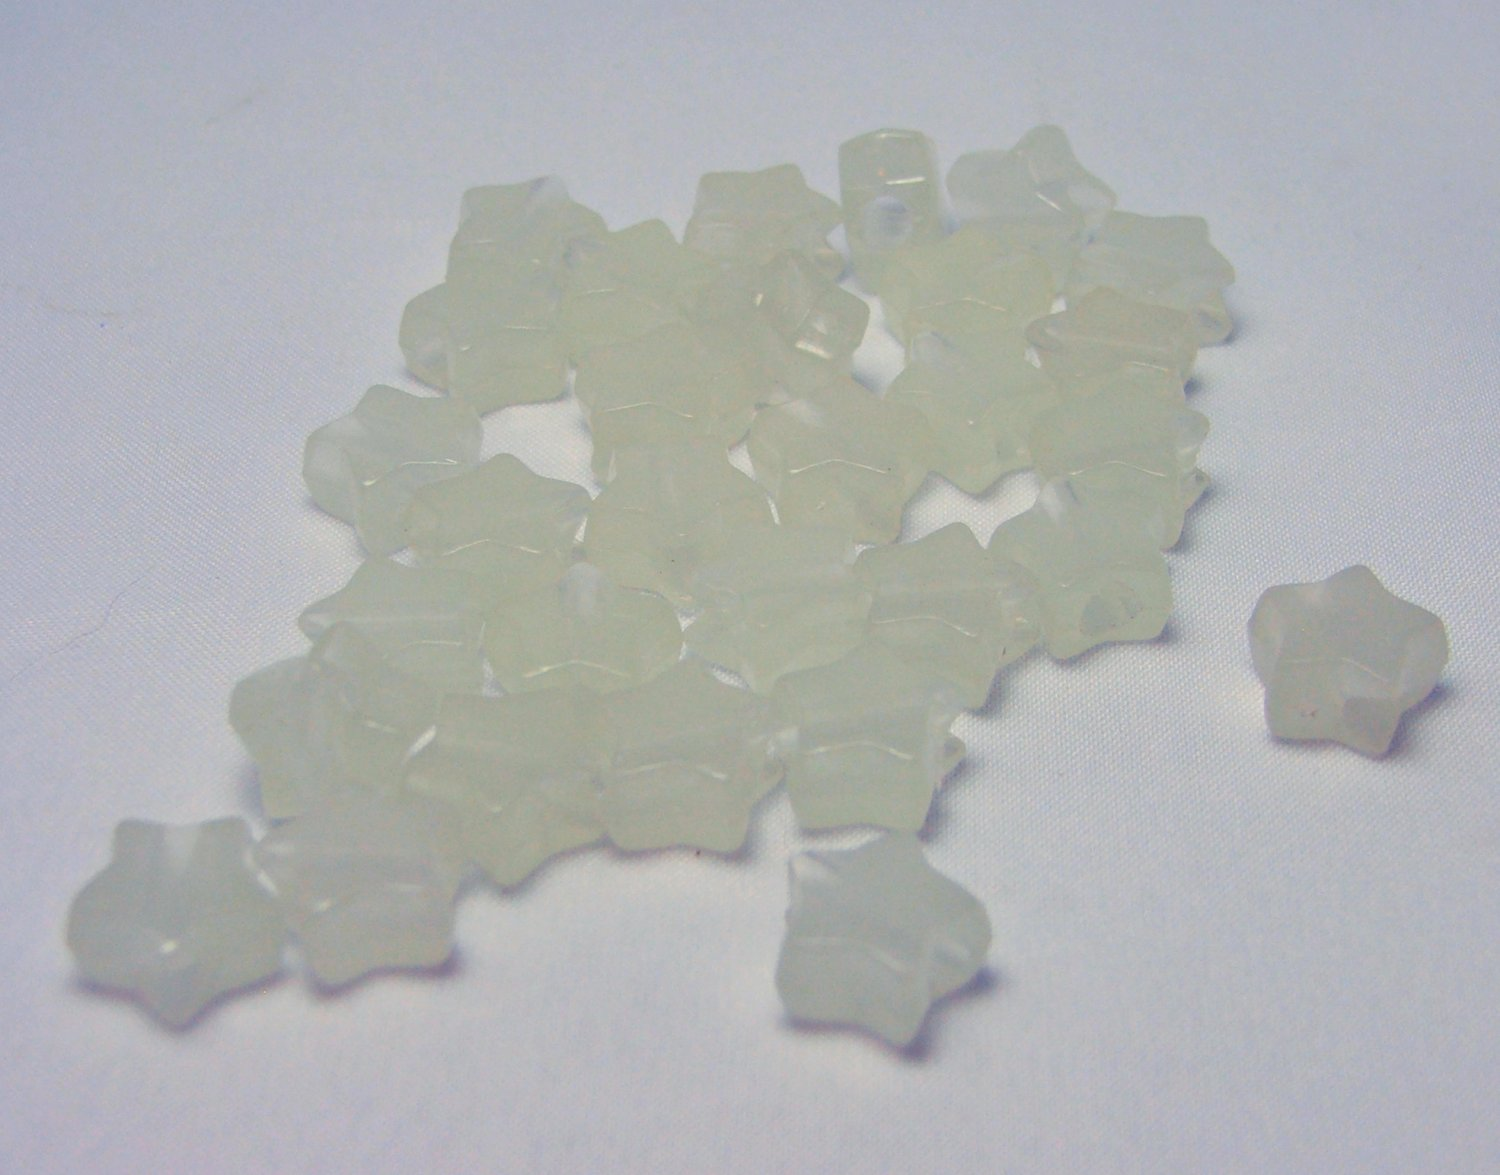 Glow in the Dark Star Shaped Beads - 0.5 oz Lot